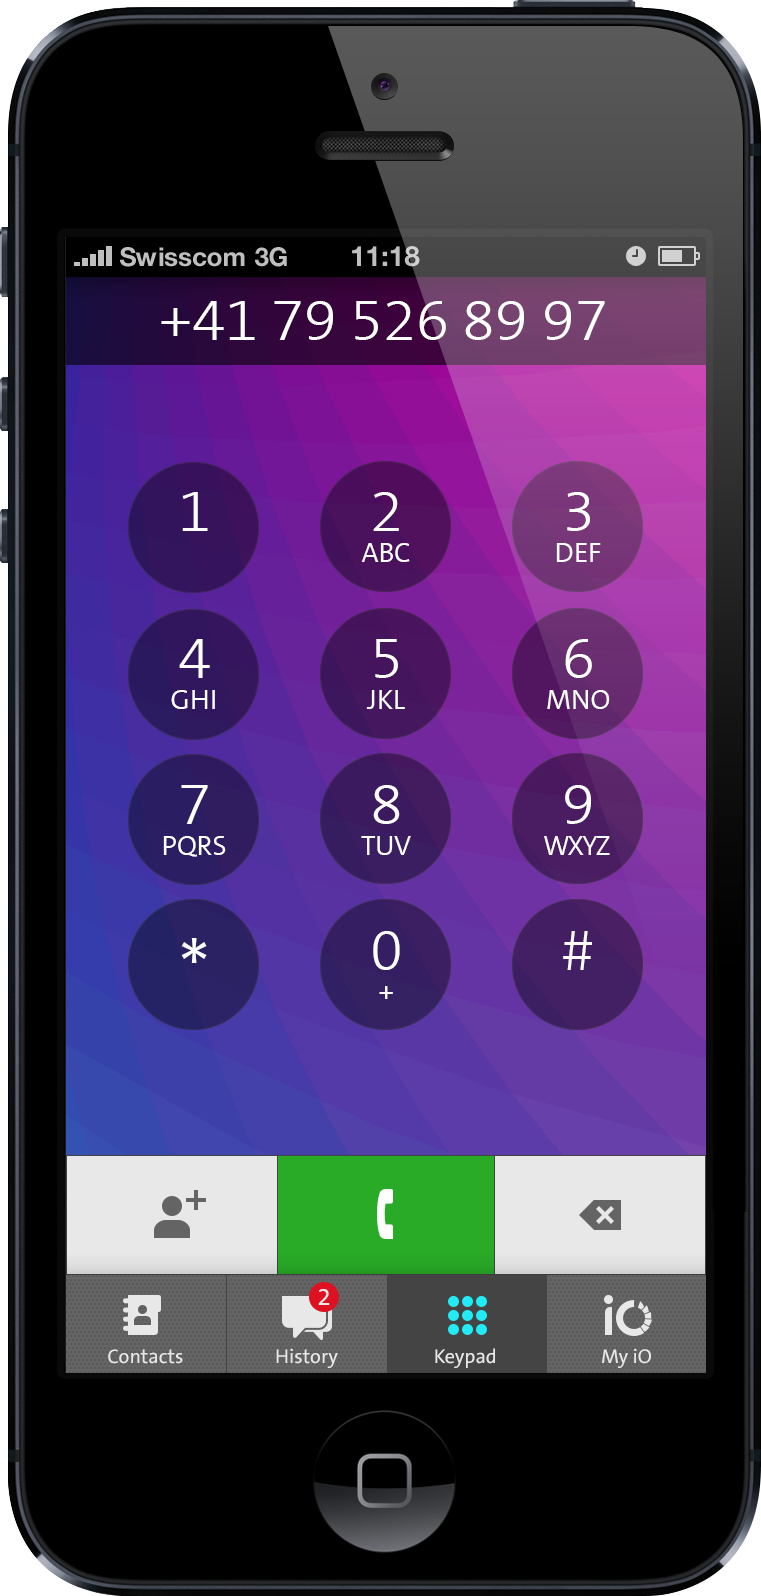 iO_iPhone5_keypad.png